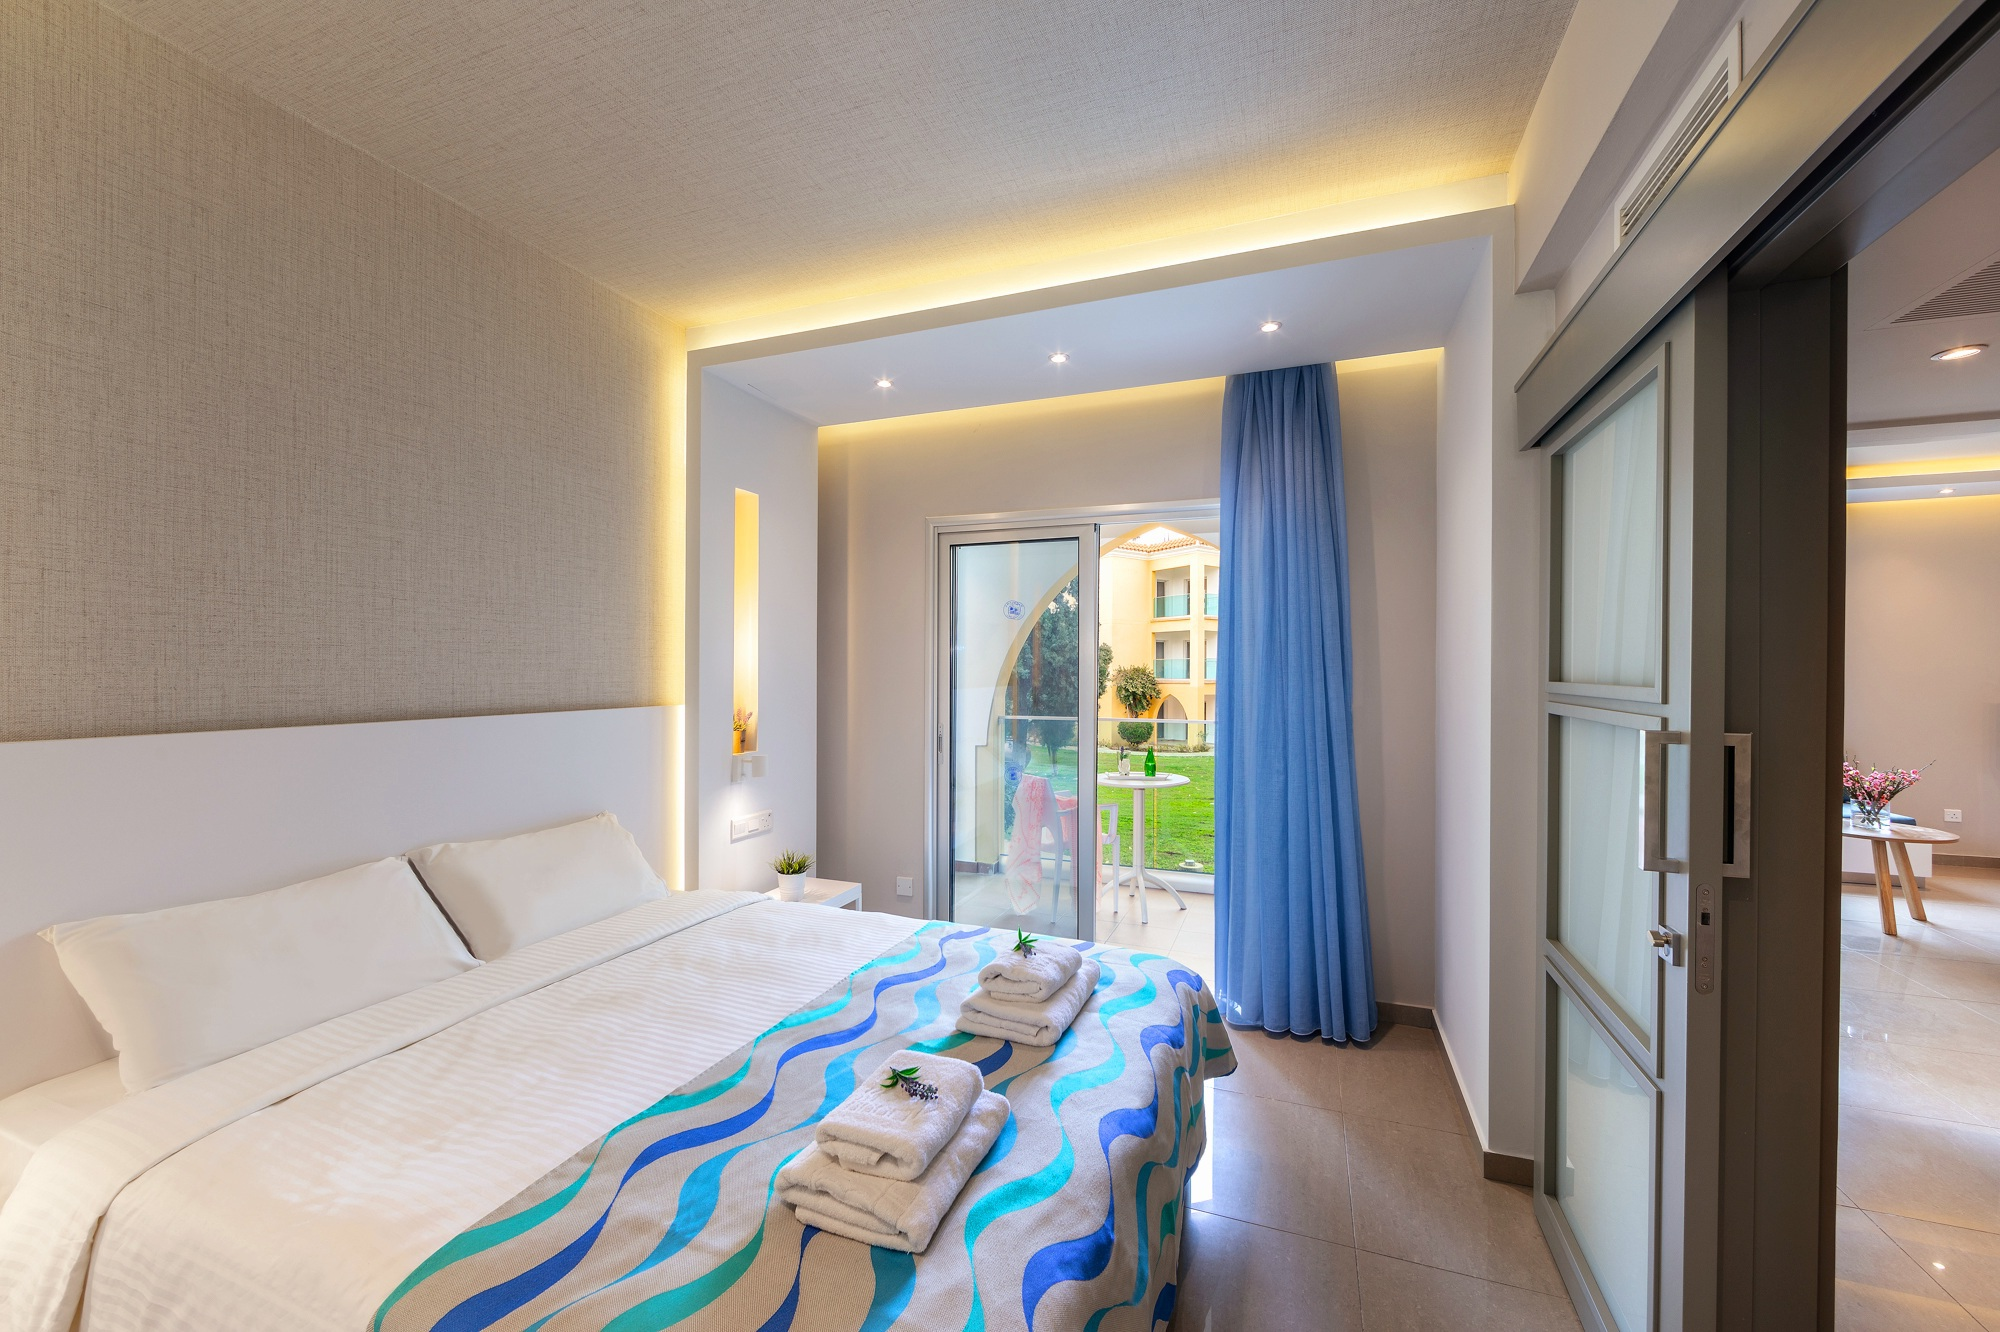 Malama Beach Holiday Village - Two Bedroom Suite